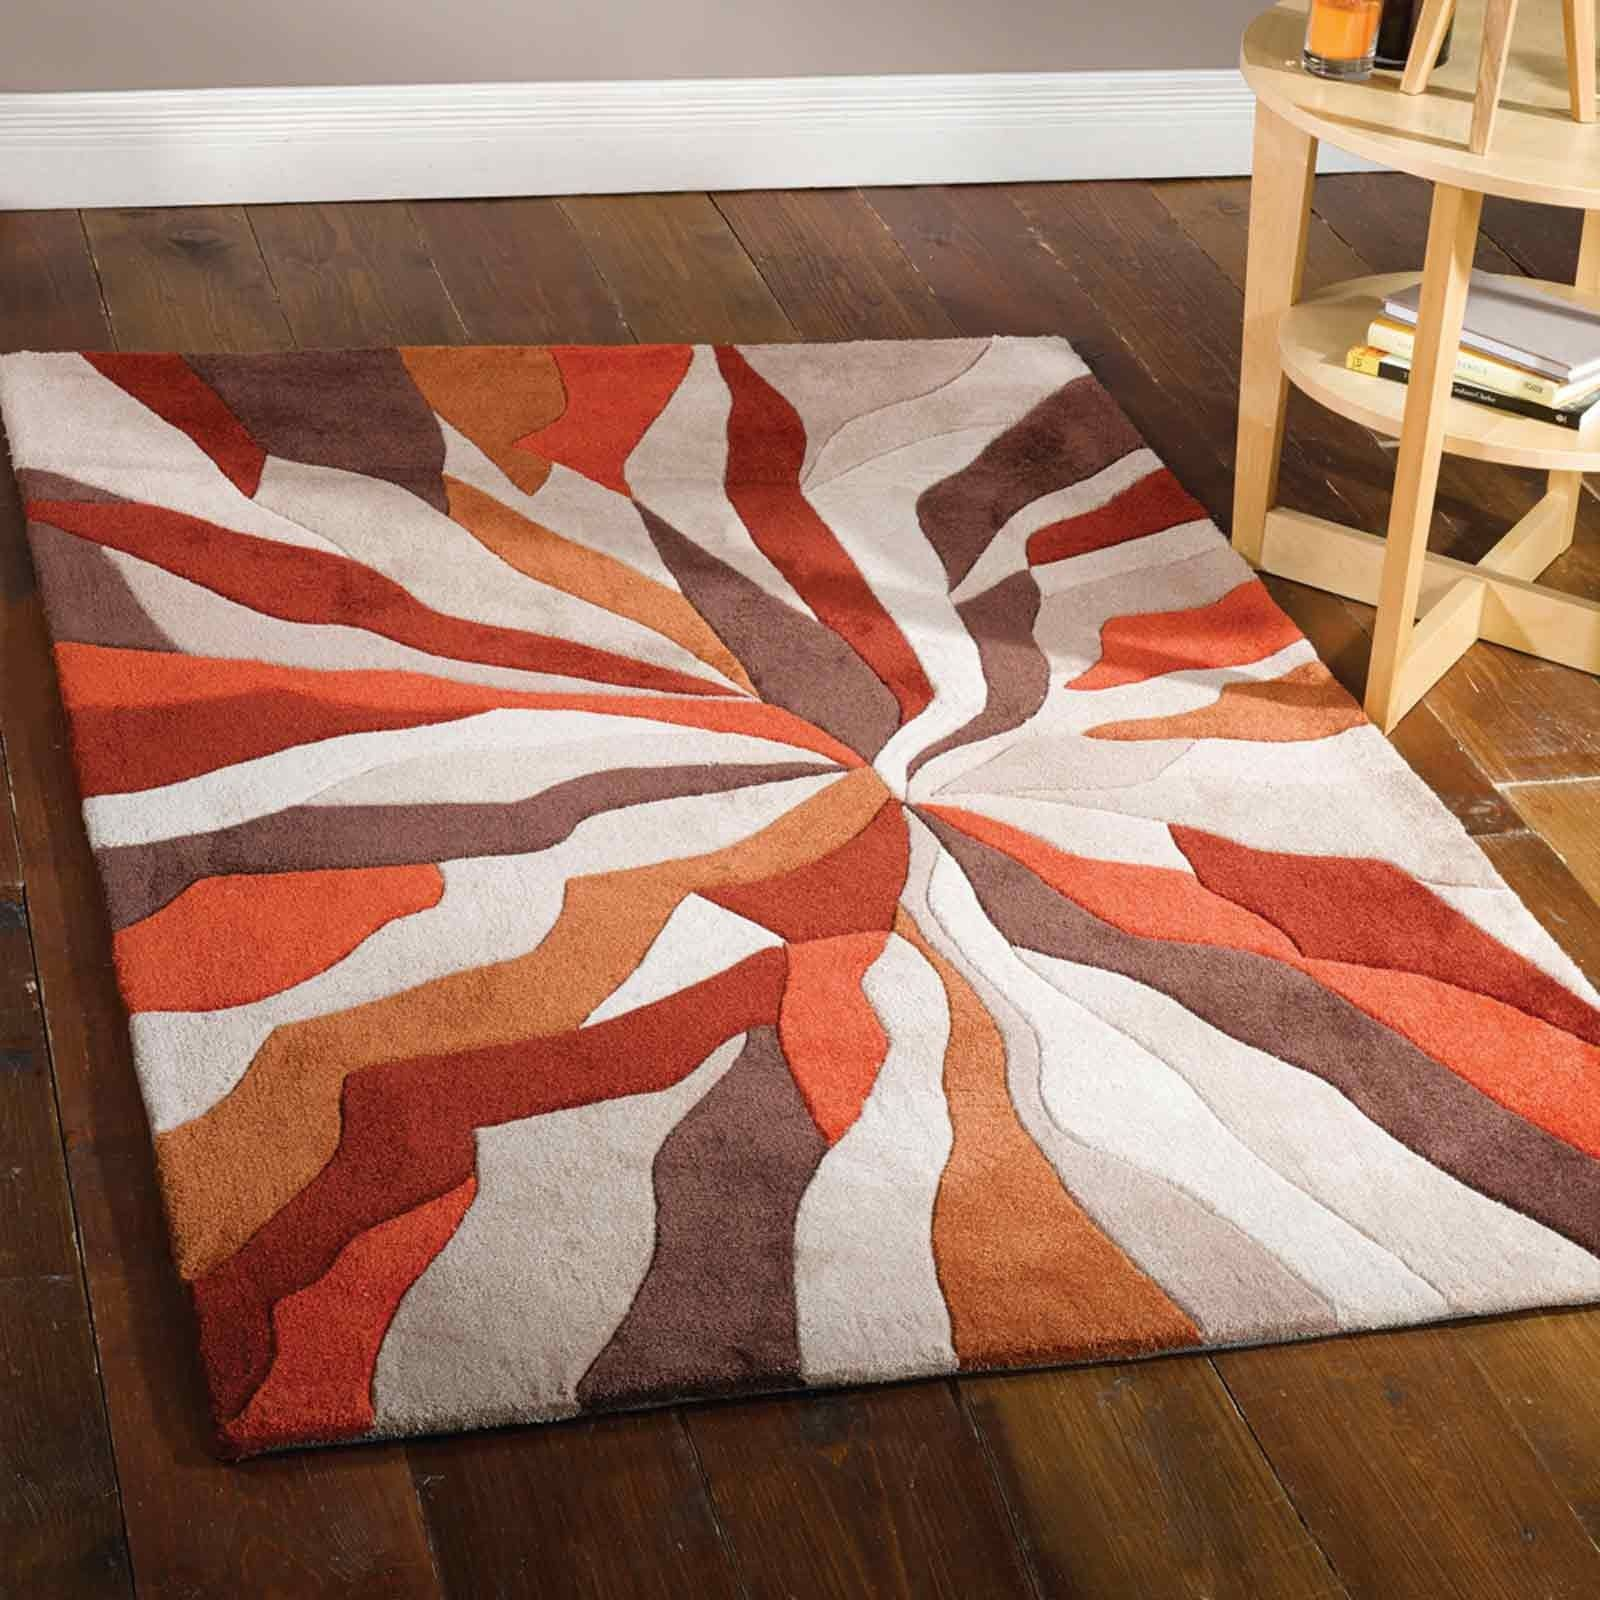 Infinite Splinter Orange Rug Orange Rugs Rugs On Carpet